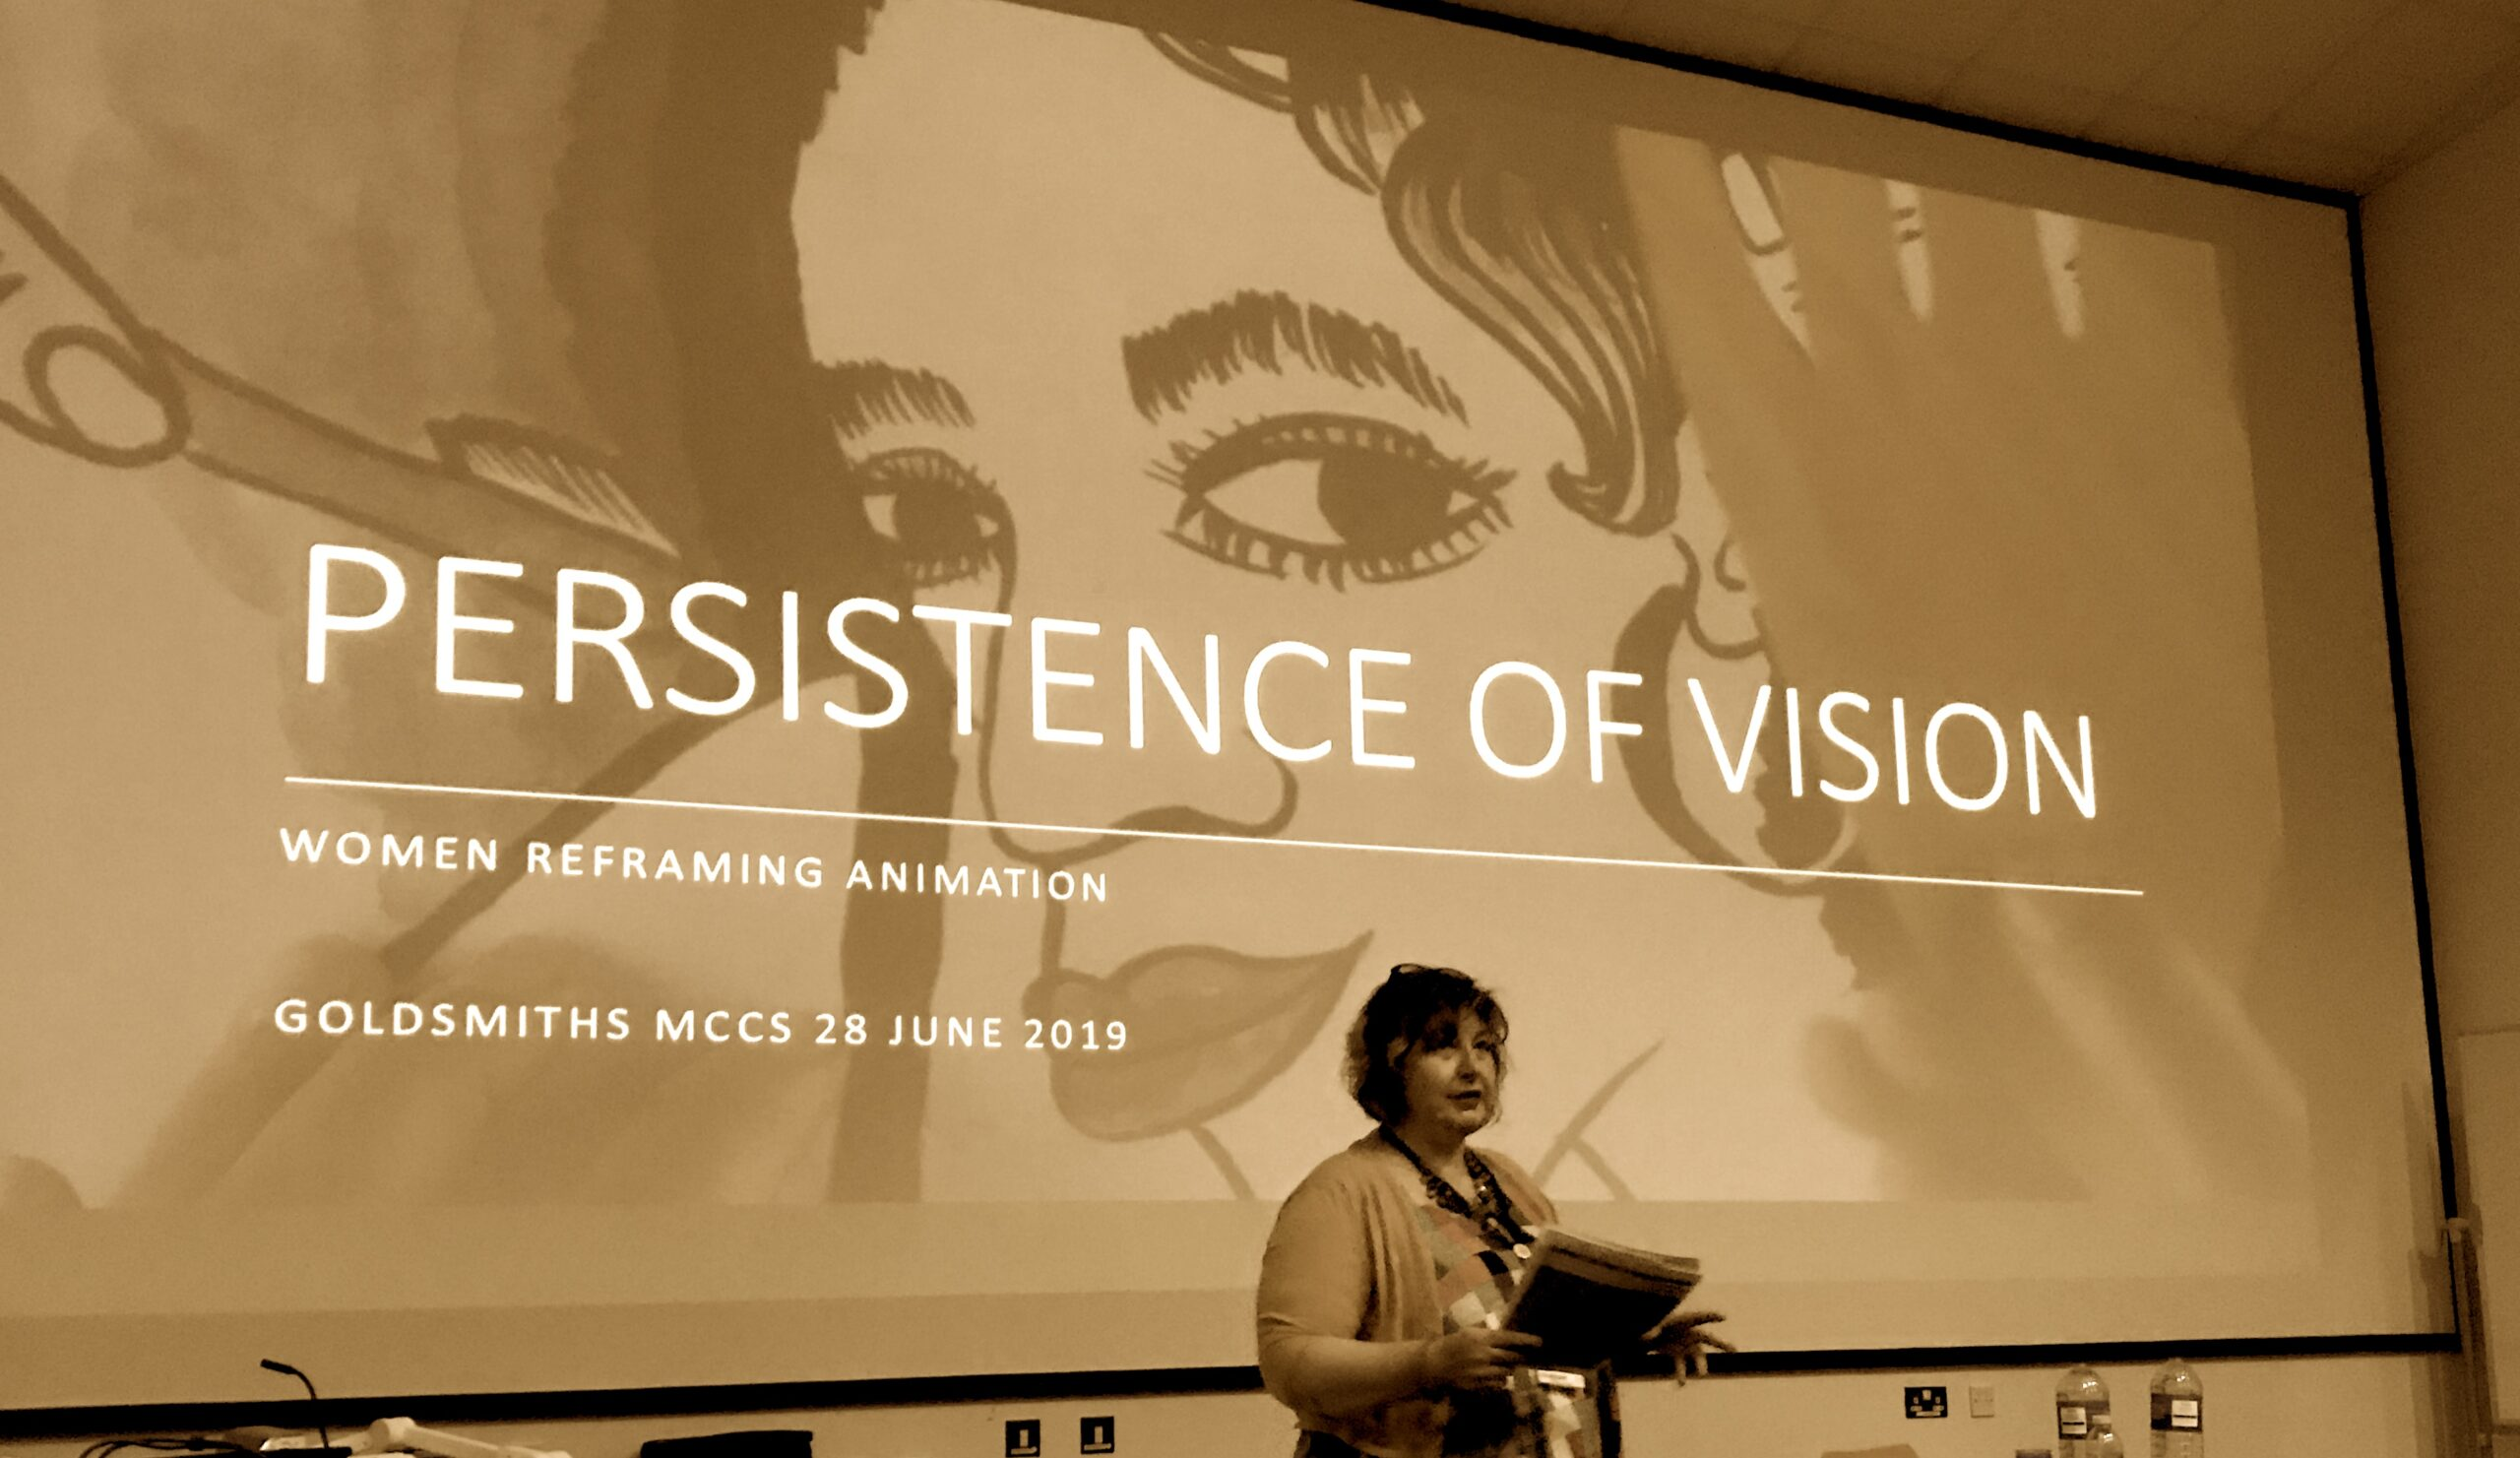 Persistence of Vision: Women Reframing Animation Symposium